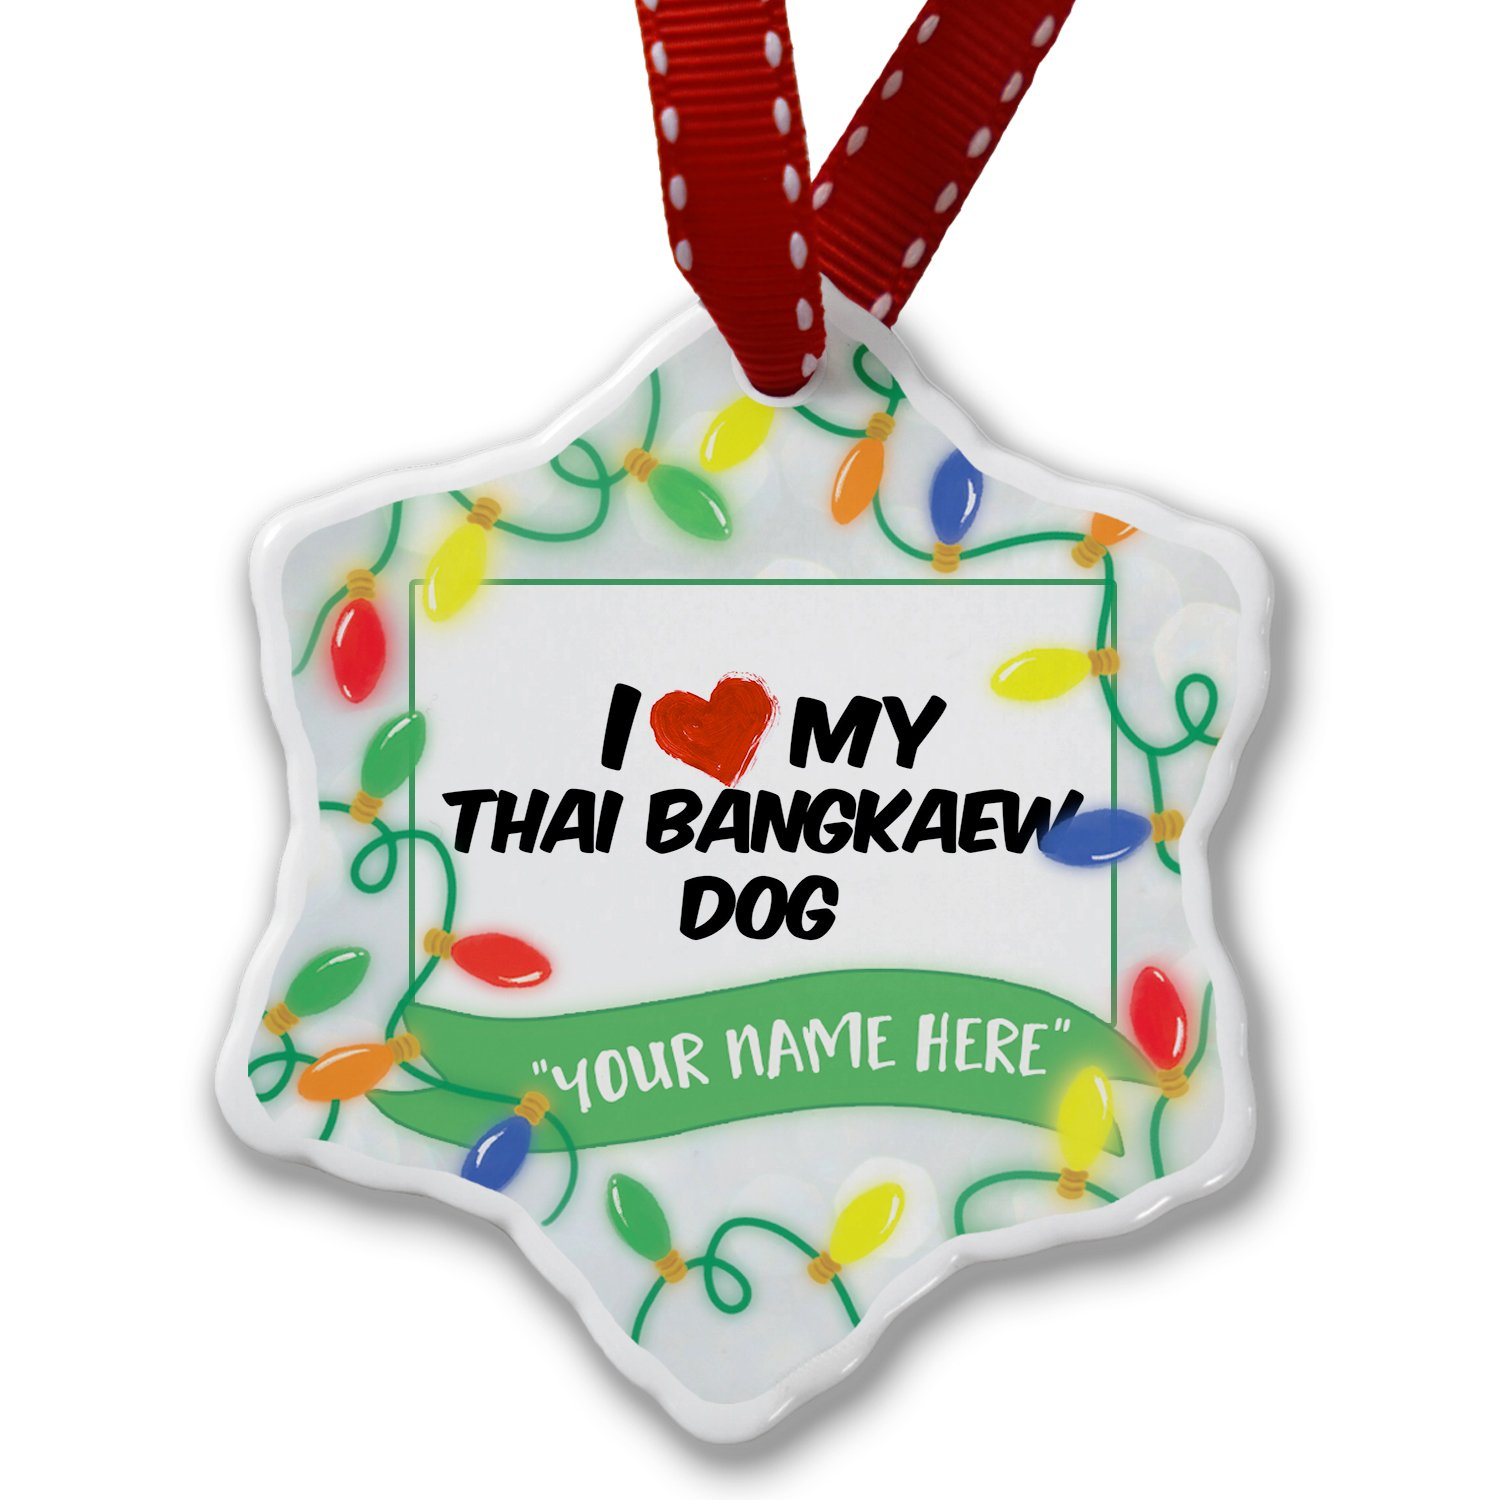 Personalized Name Christmas Ornament, I Love my Thai Bangkaew Dog from Thailand NEONBLOND